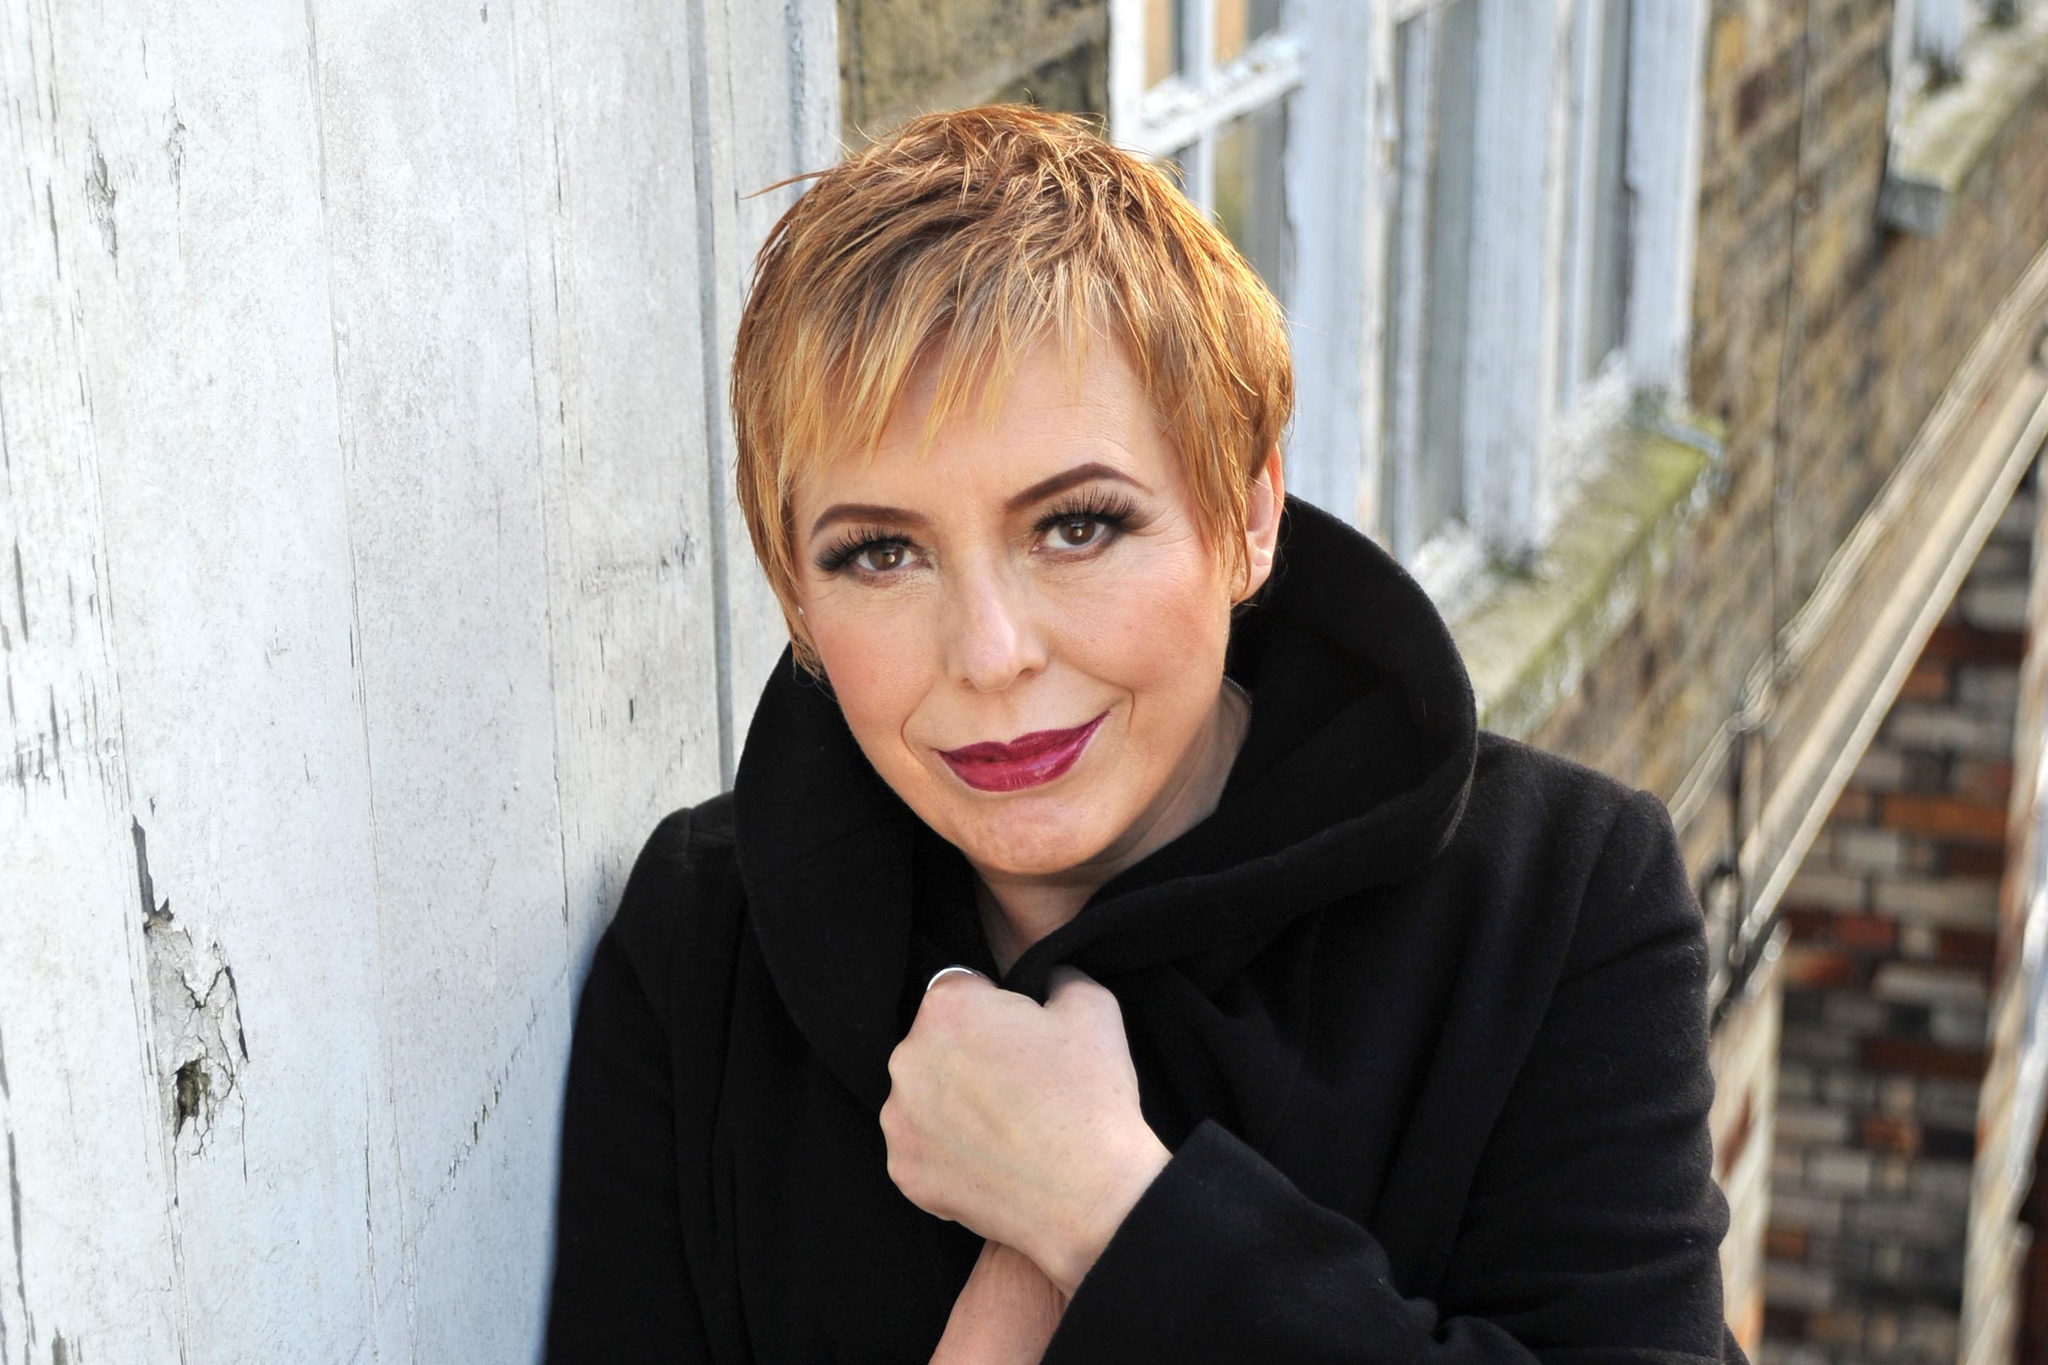 Barb Jungr and John McDaniel: Come Together